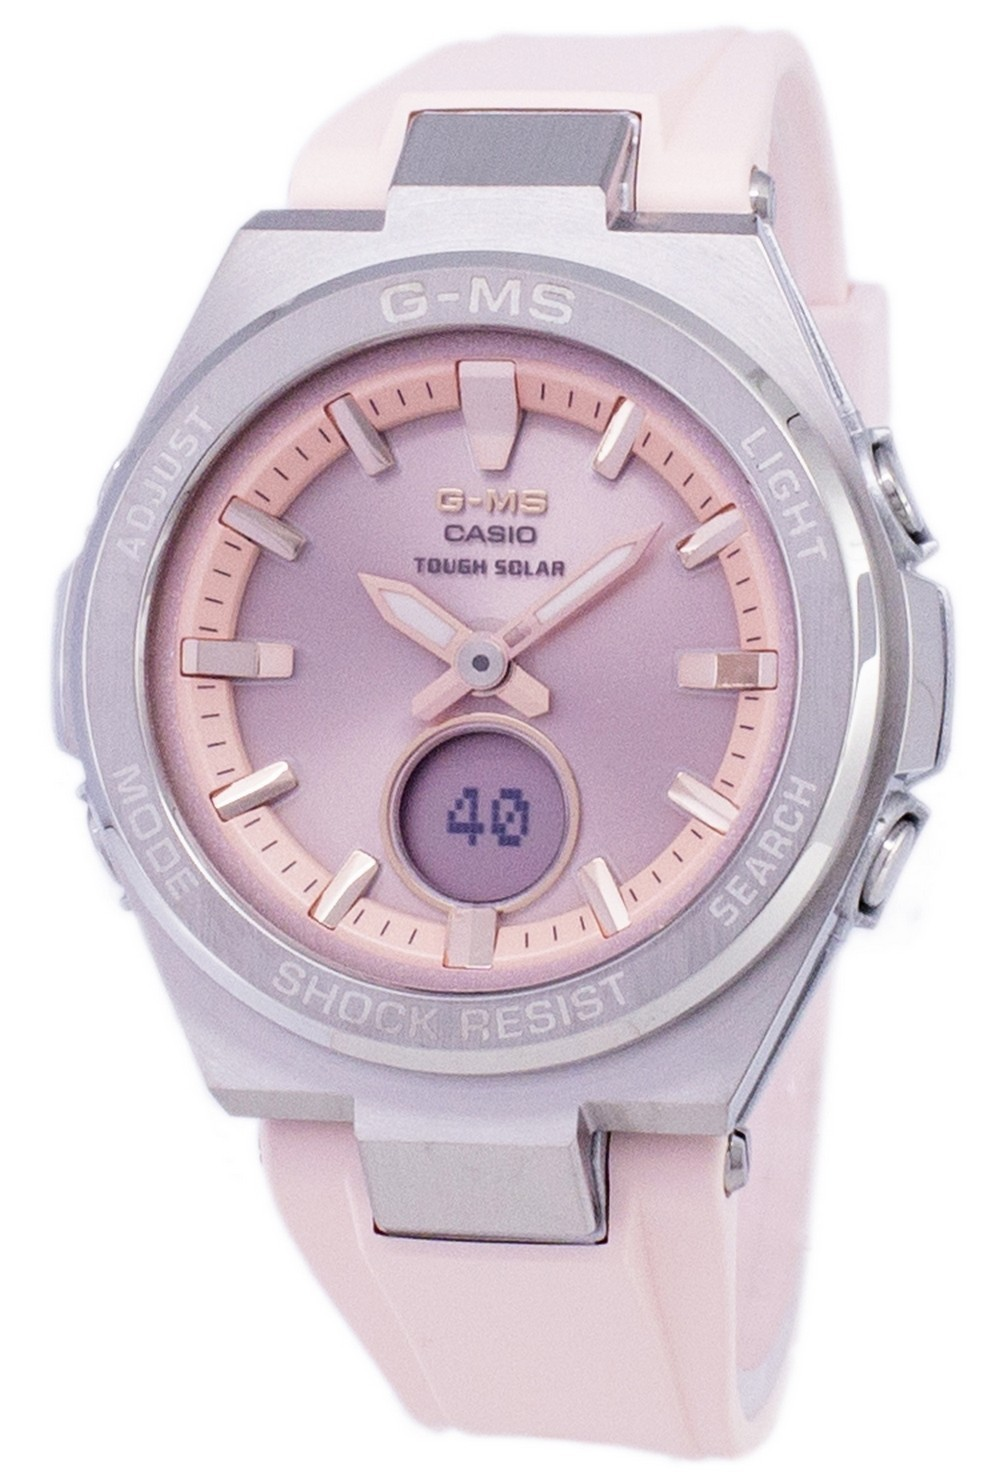 Casio G-MS Tough Solar Shock Resistant Analog Digital MSG-S200-4A MSGS200-4A Womens Watch